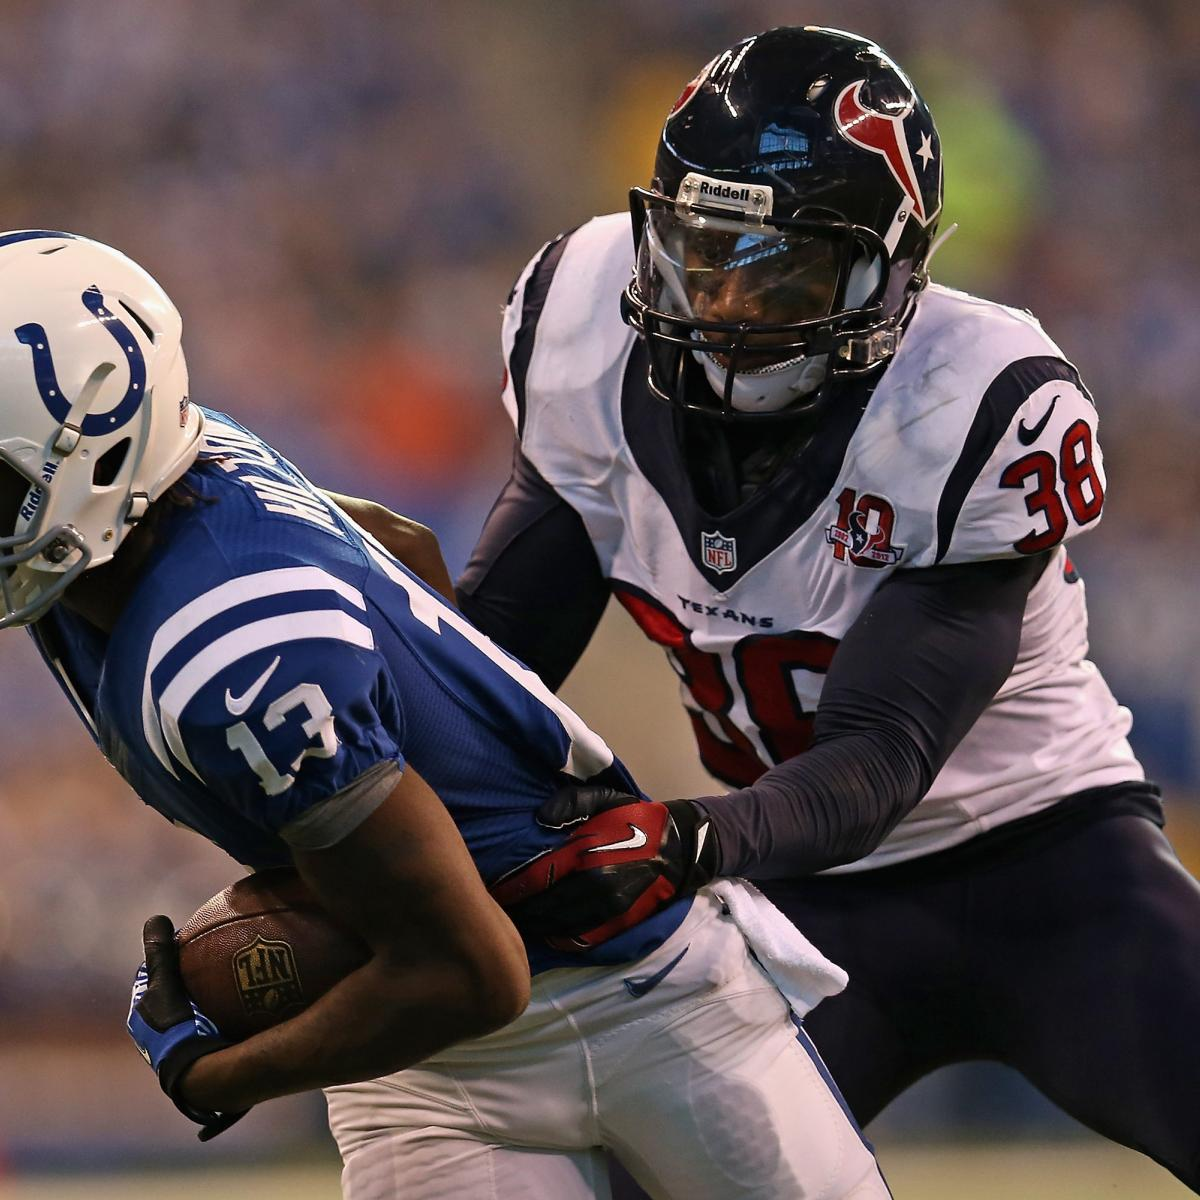 How T.Y. Hilton Can Improve on His Impressive Rookie ... Lavon Brazill Colts 2013